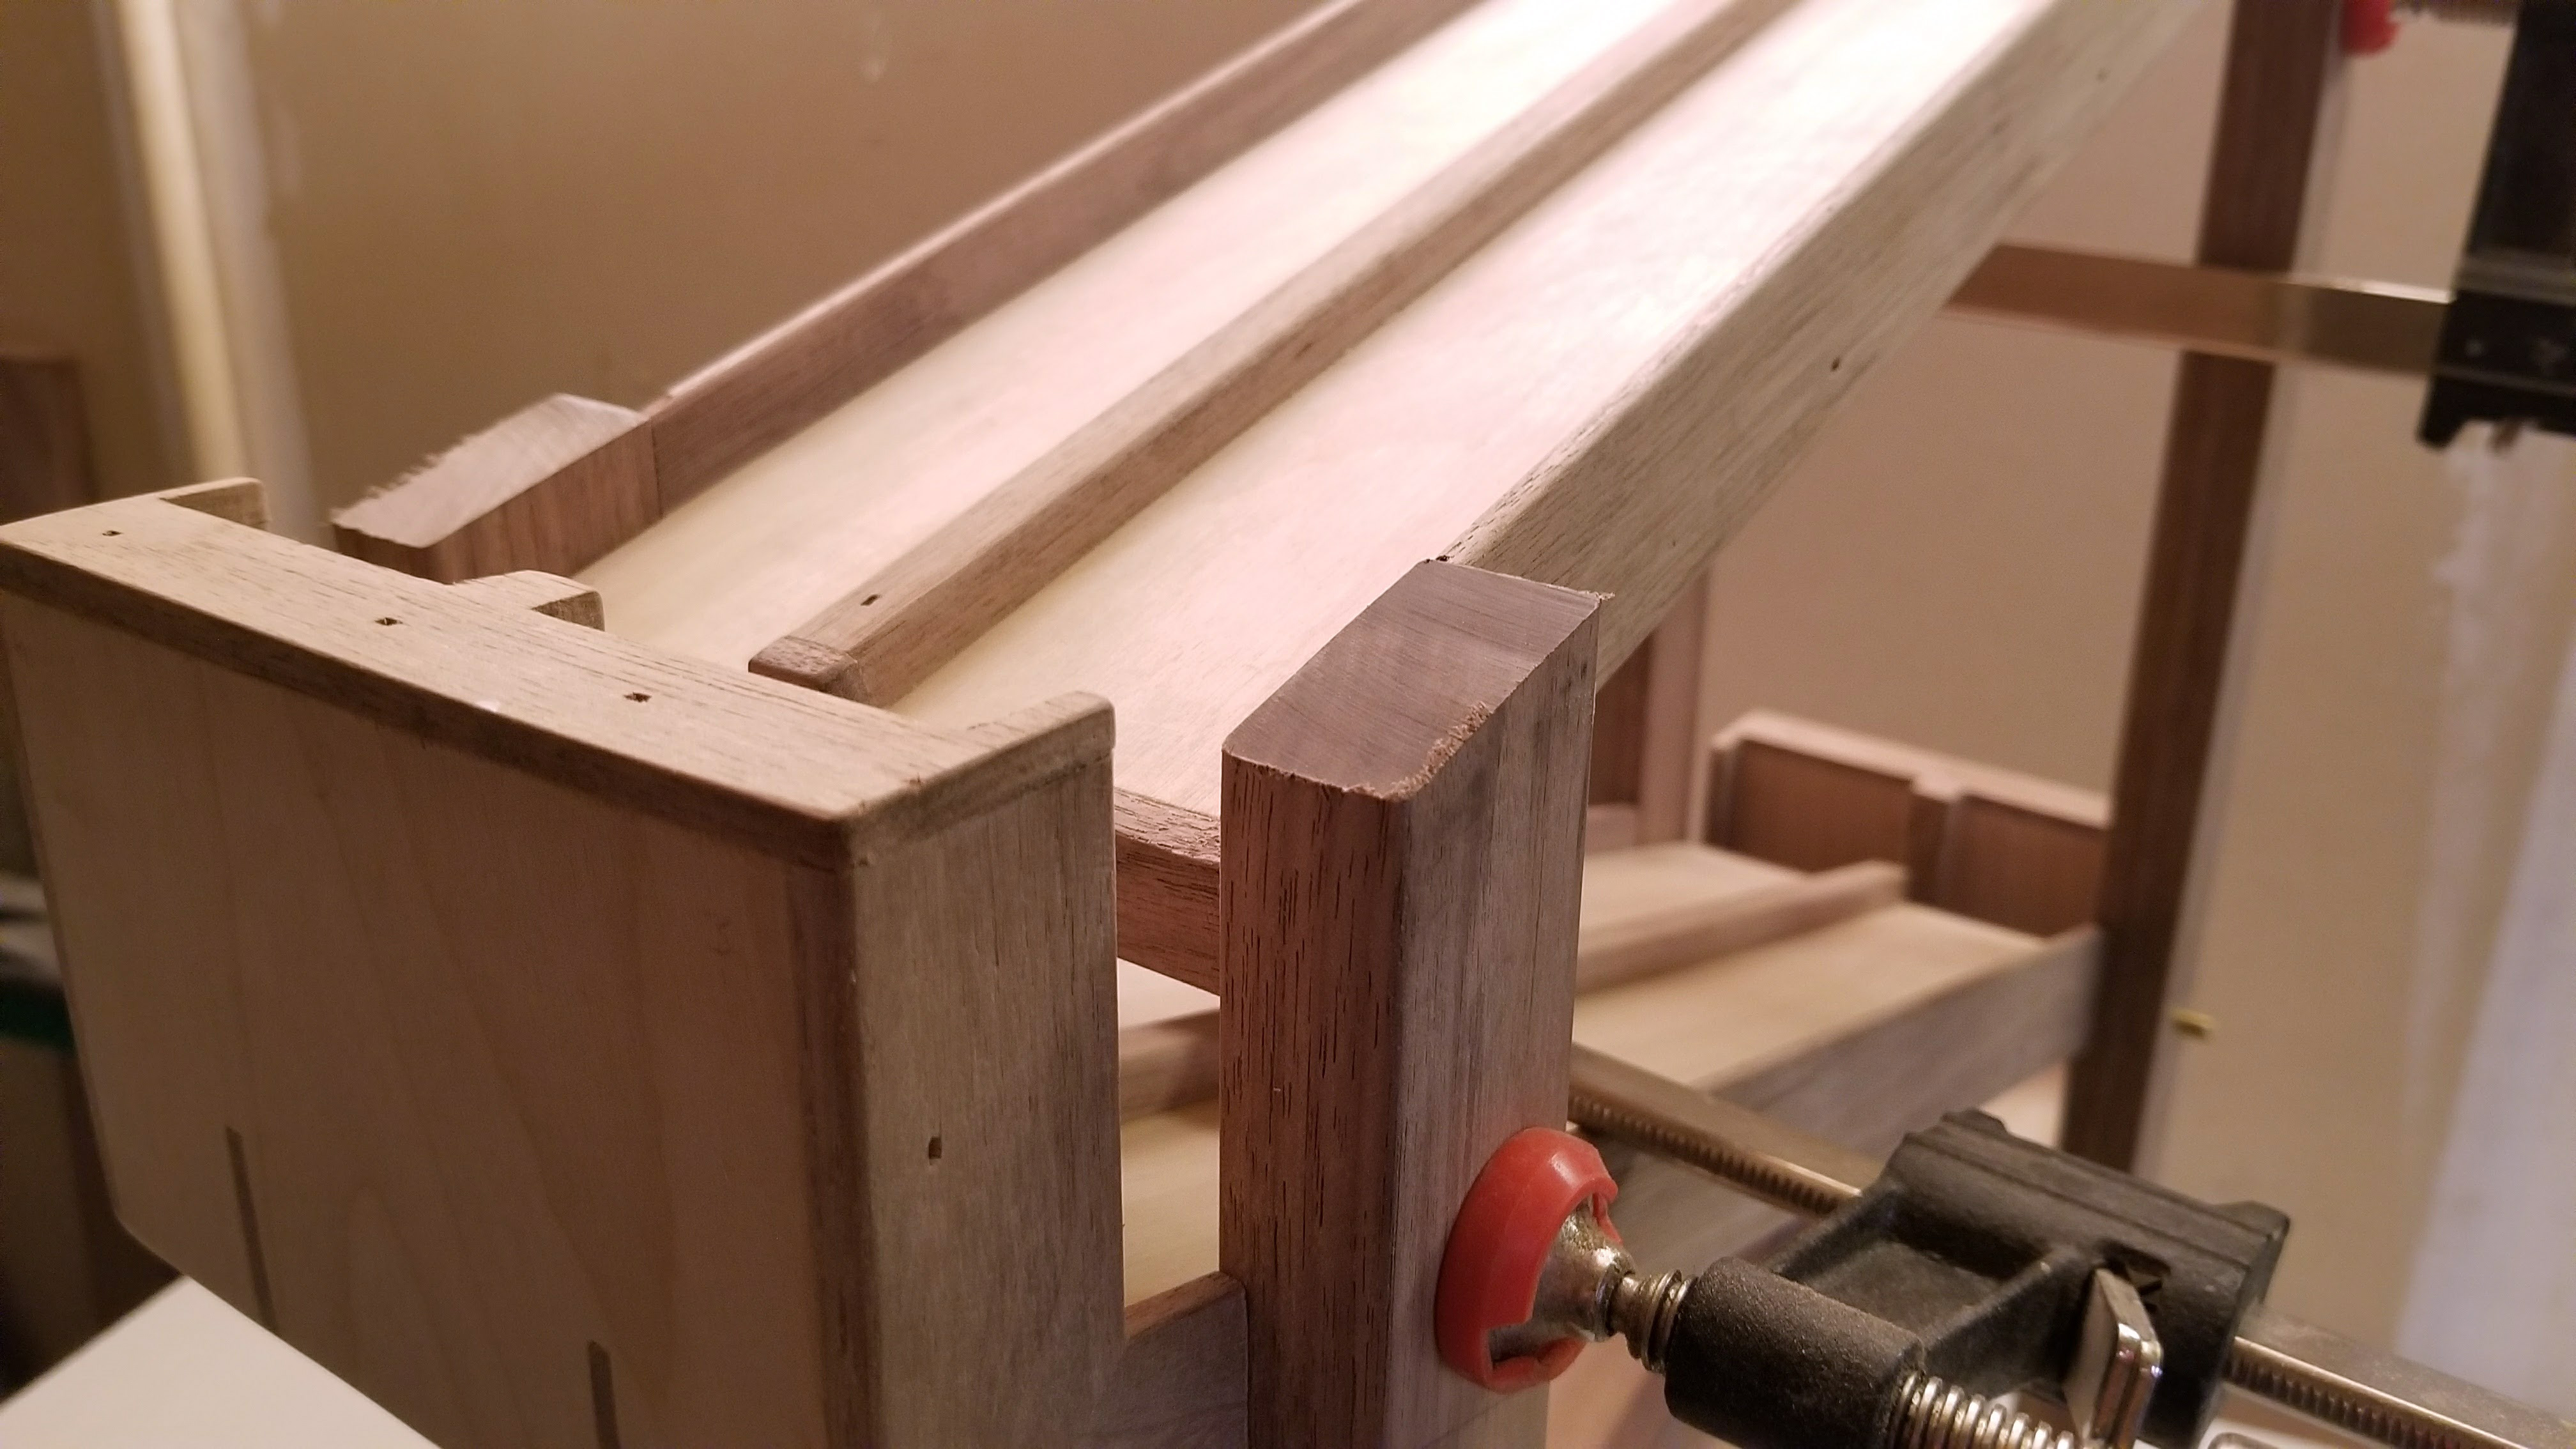 Picture of Drill Holes for Pins